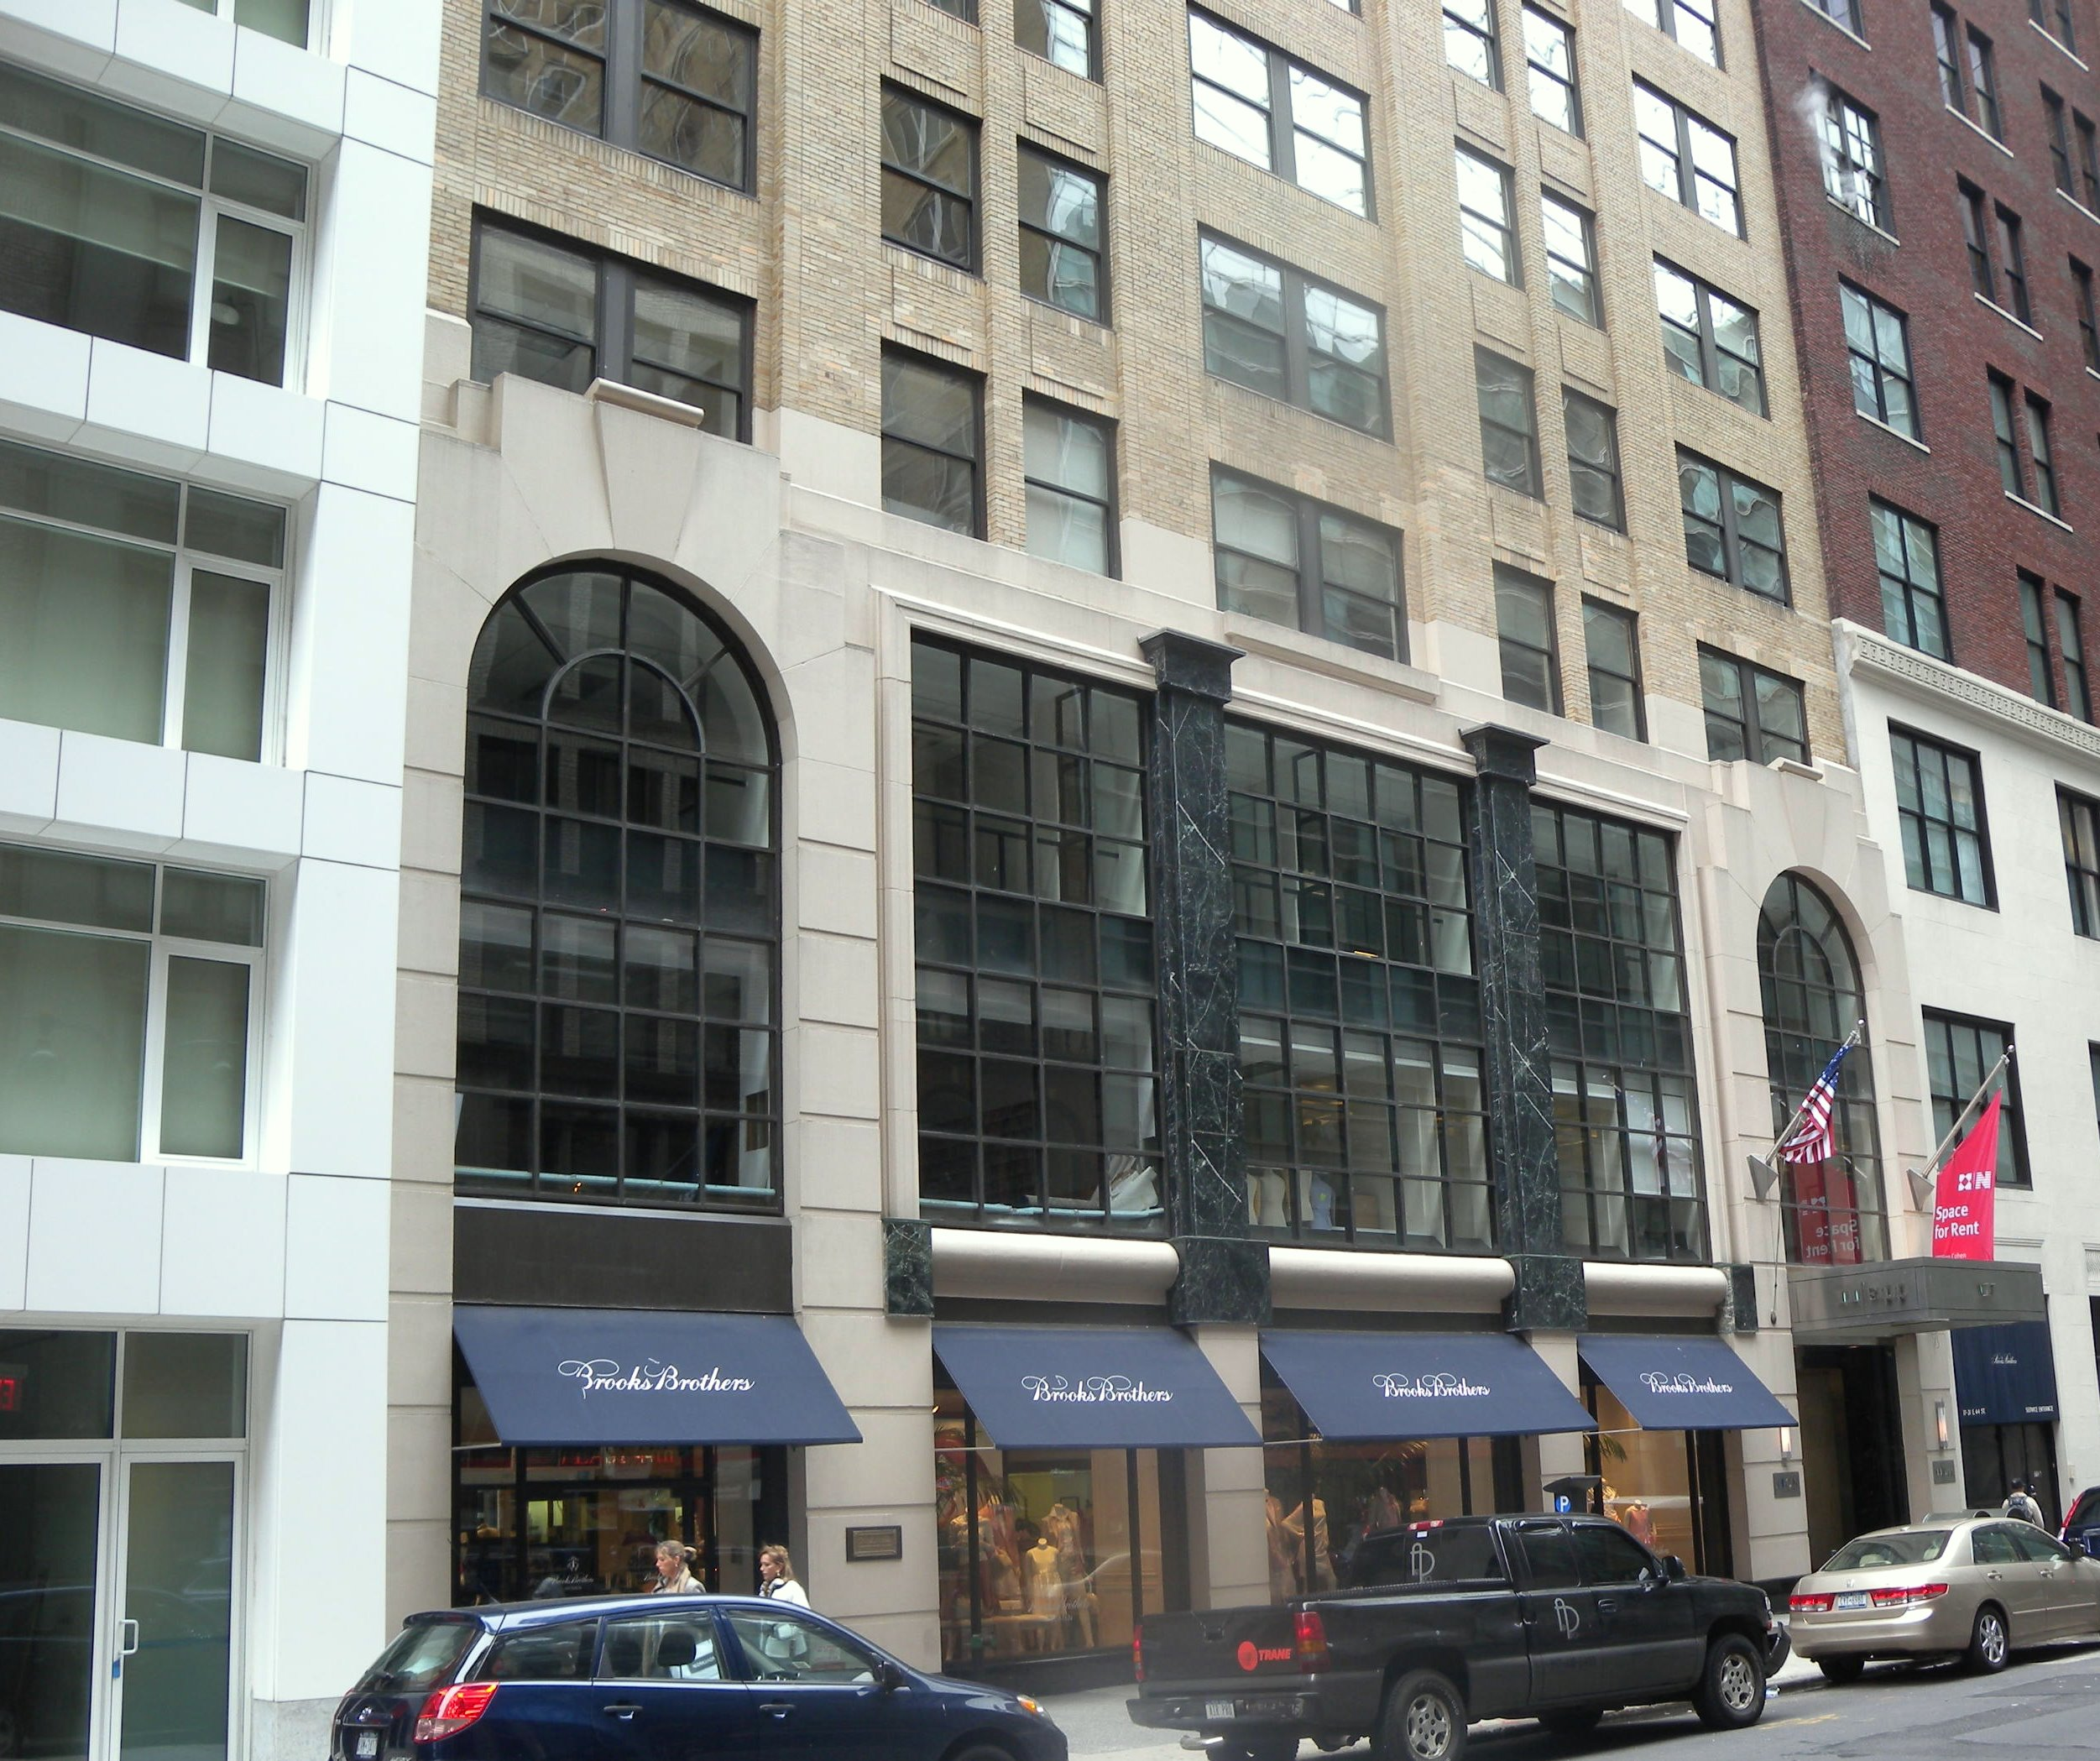 Wiki brooks brothers upcscavenger for Brooks brothers garland shirt factory